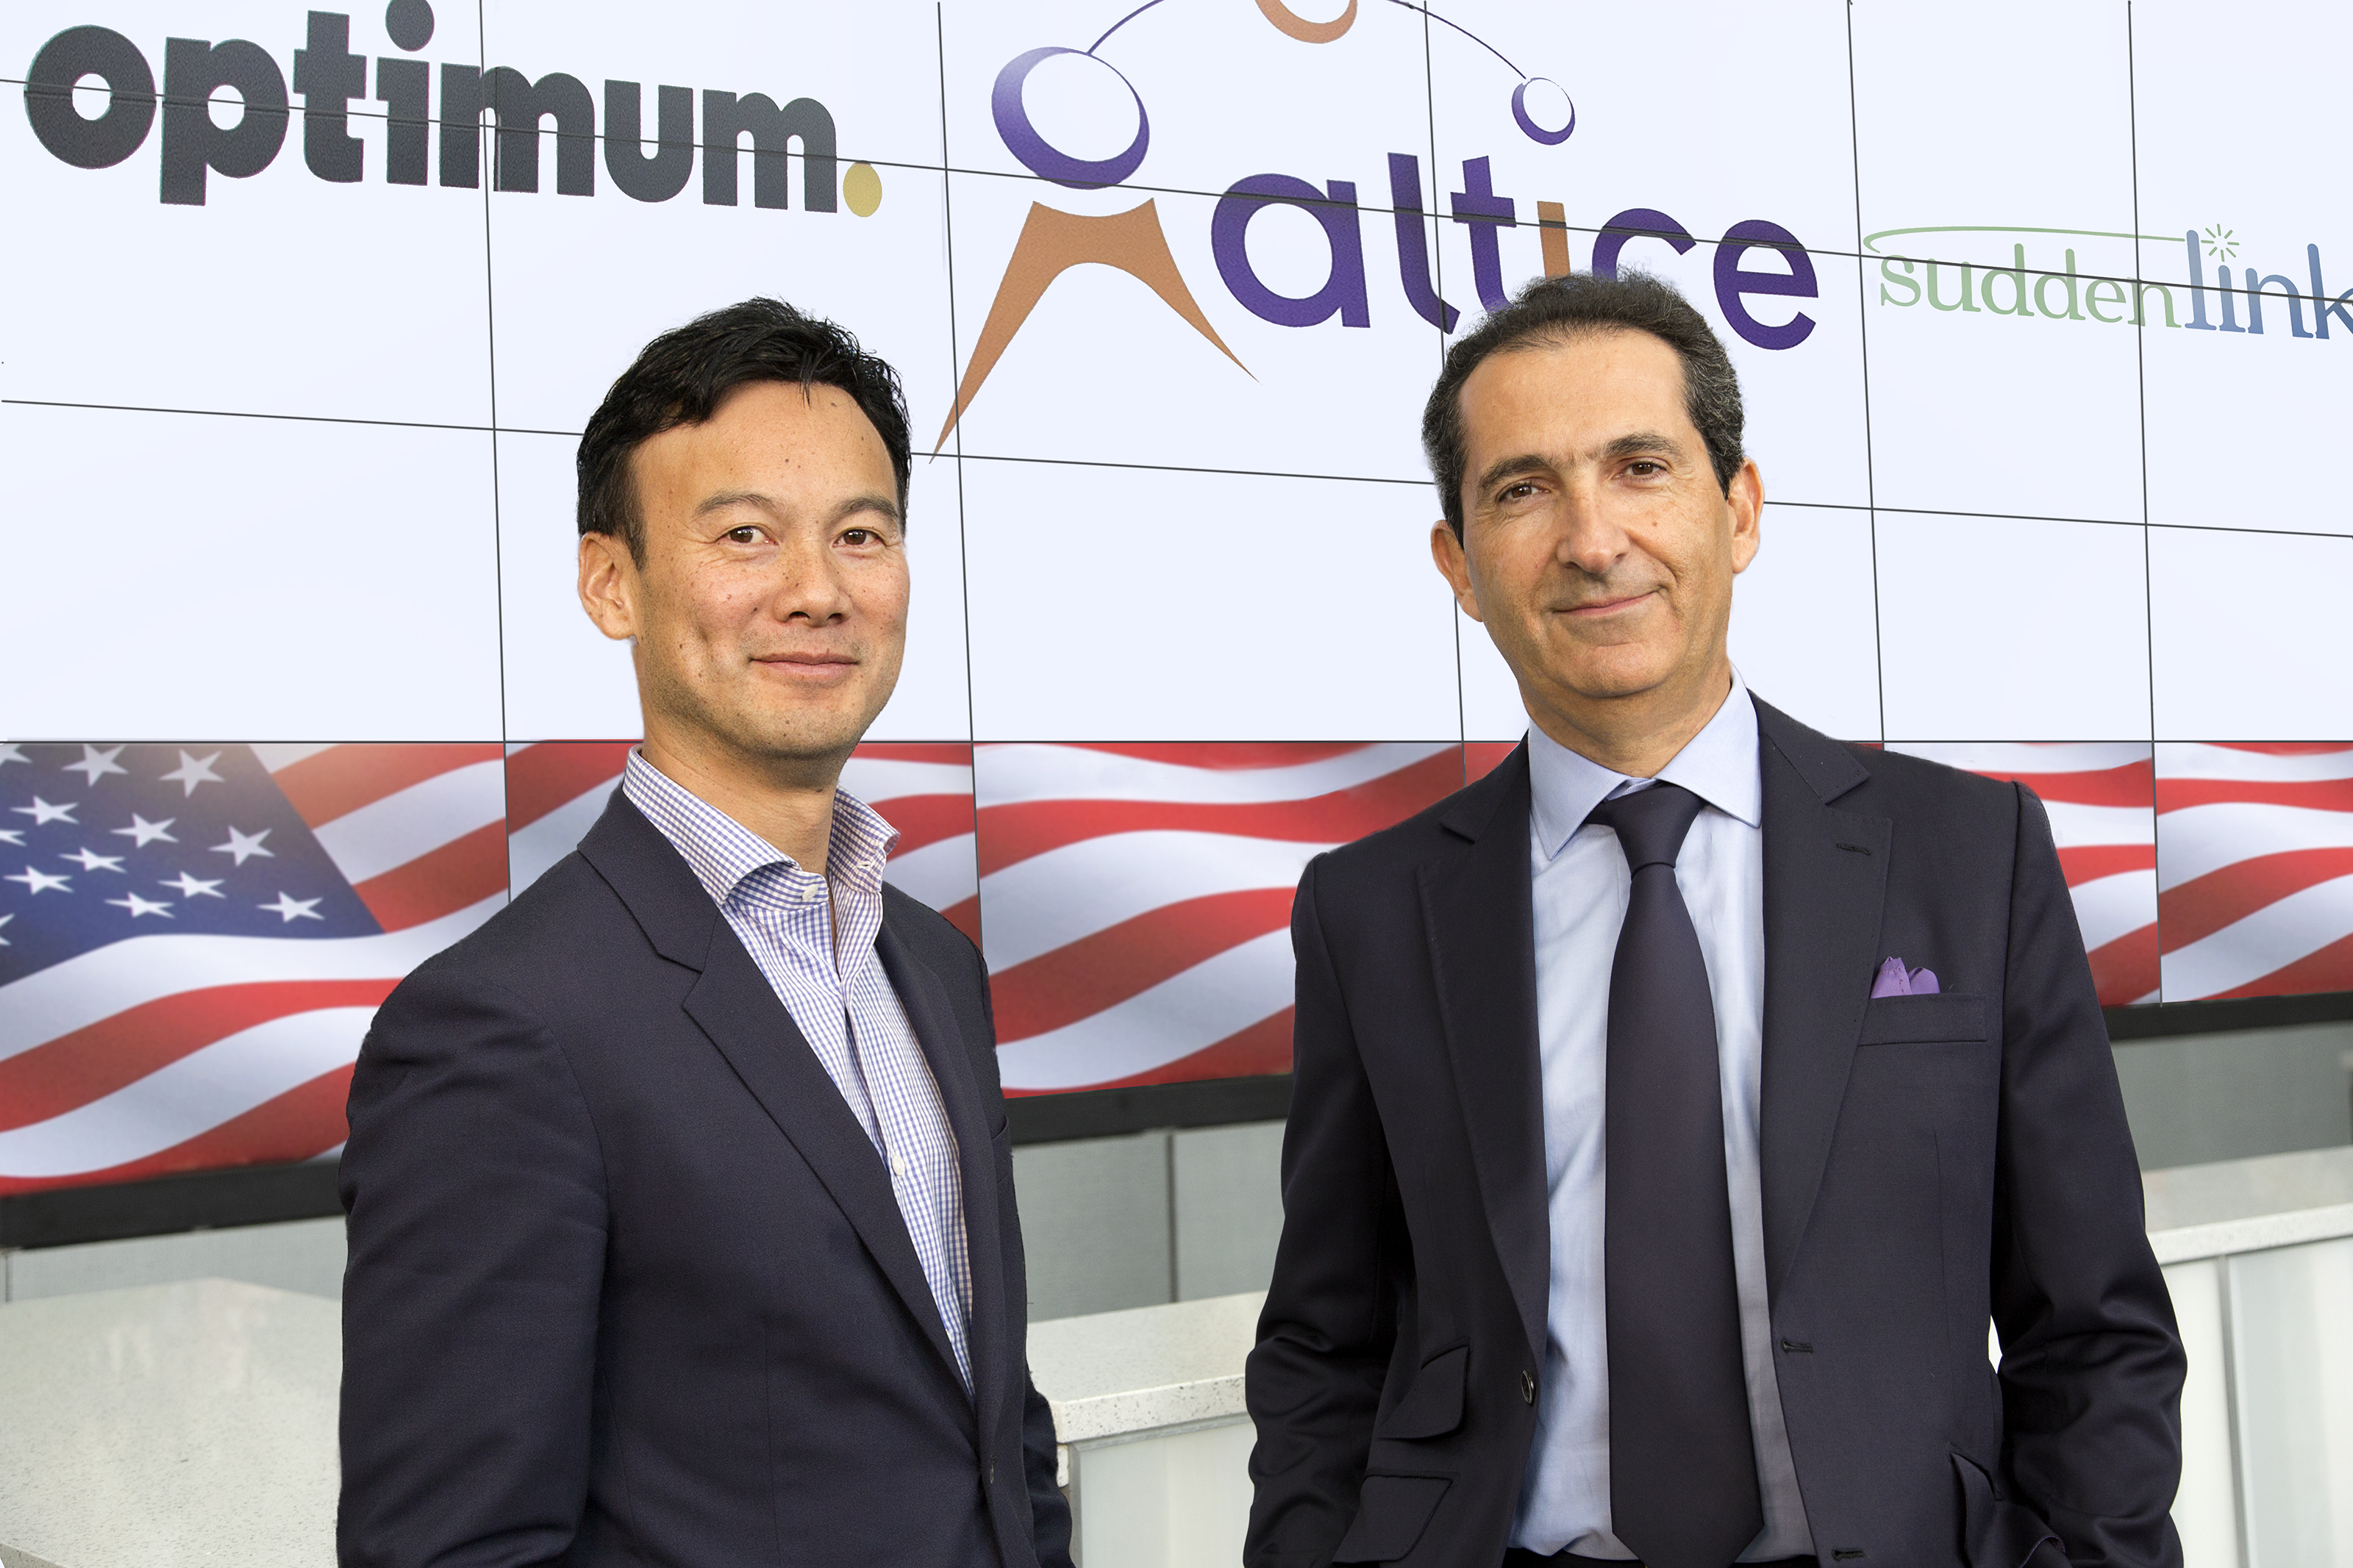 Altice_Leadership_v.3.jpg